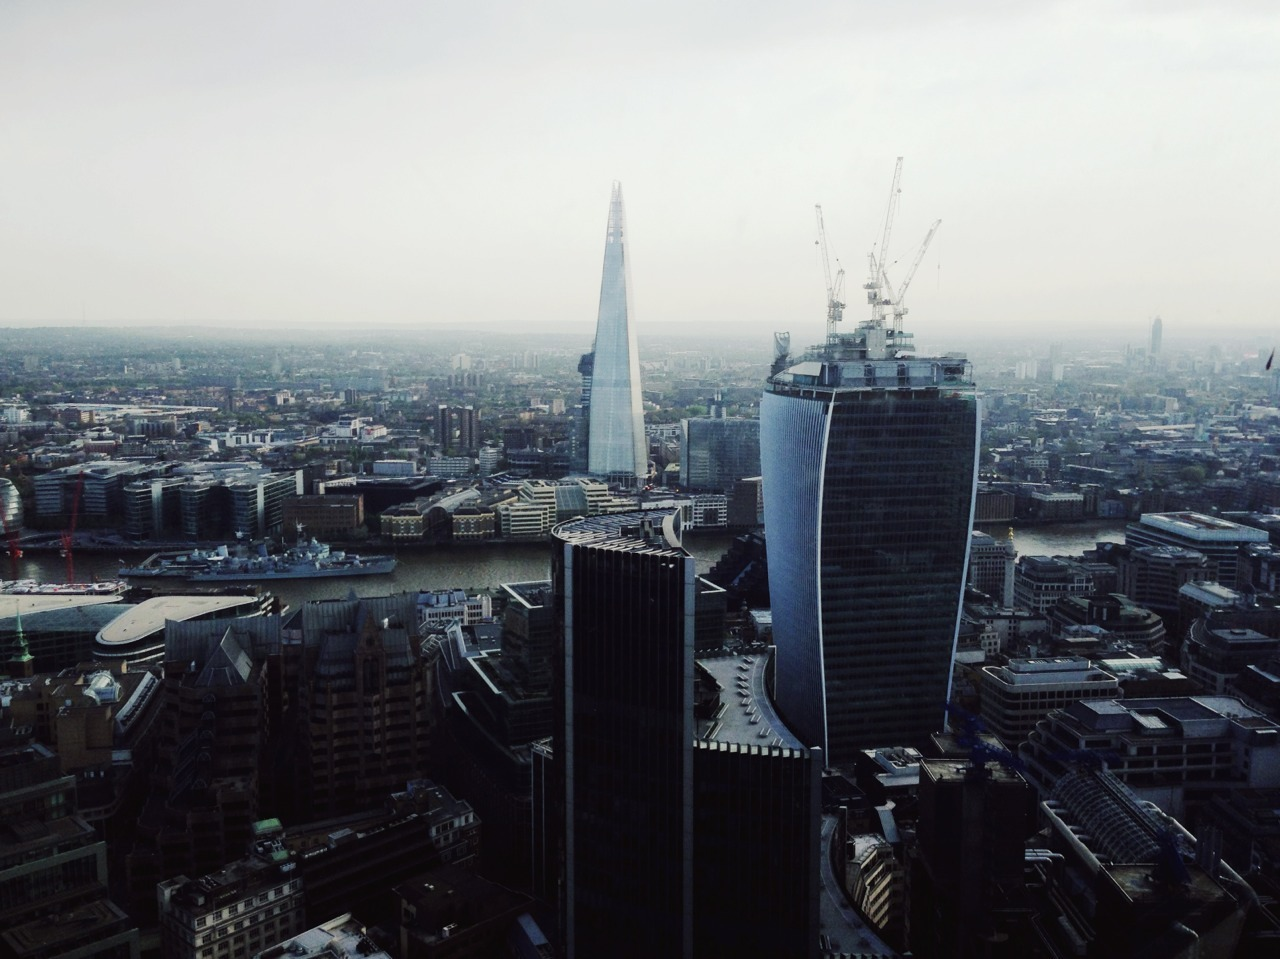 View of London from the top of the Gherkin.